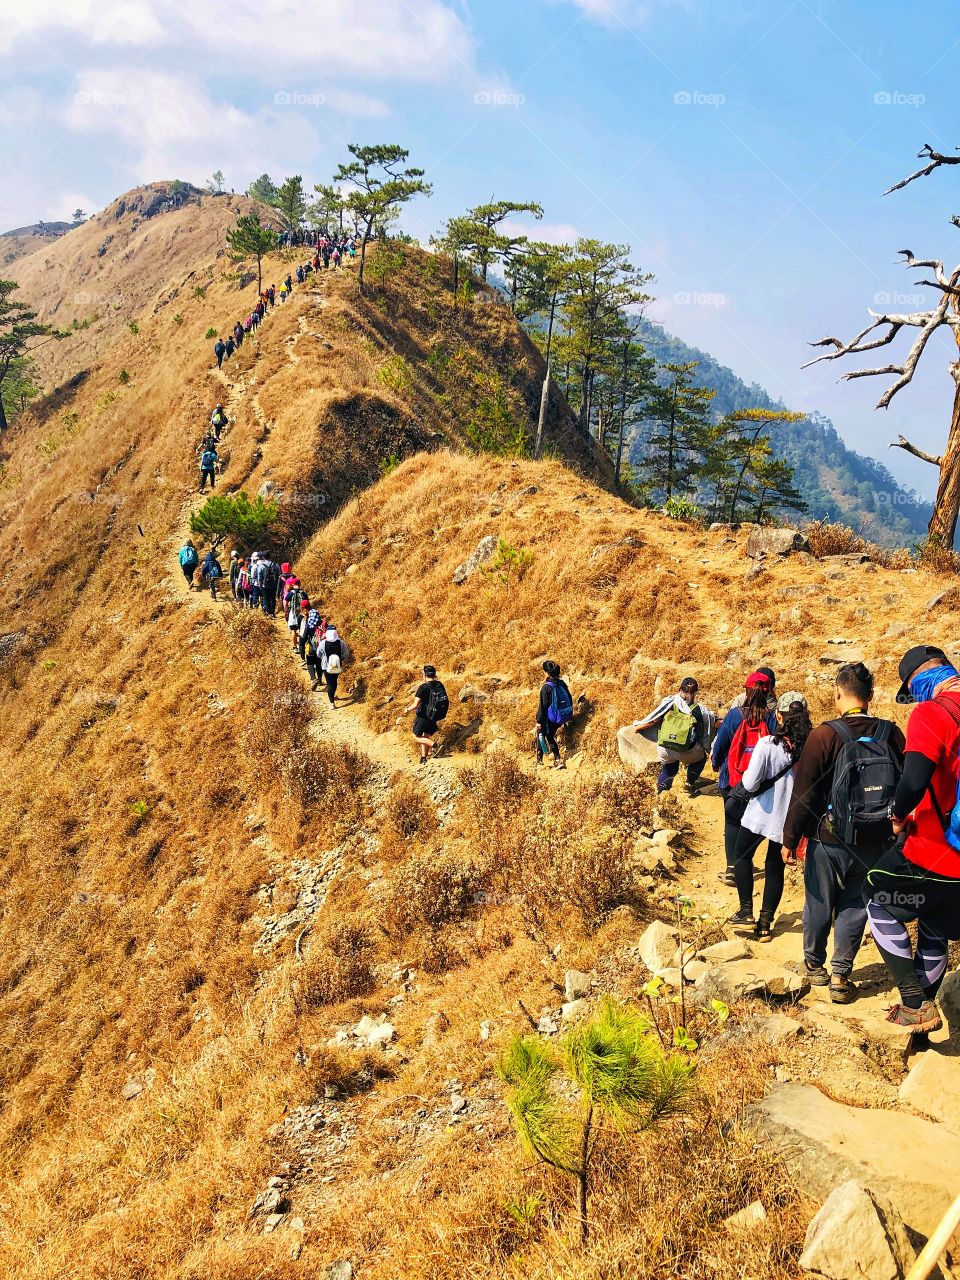 Mt. Ulap is a long hike compared to your usual one. You need more than just strength and stamina to climb up and go down, you need patience. Ulap shouldn't be that hard for experienced hikers and mountaineers. I survived Mt. Ulap! ⛰️💪 (1846 MASL)